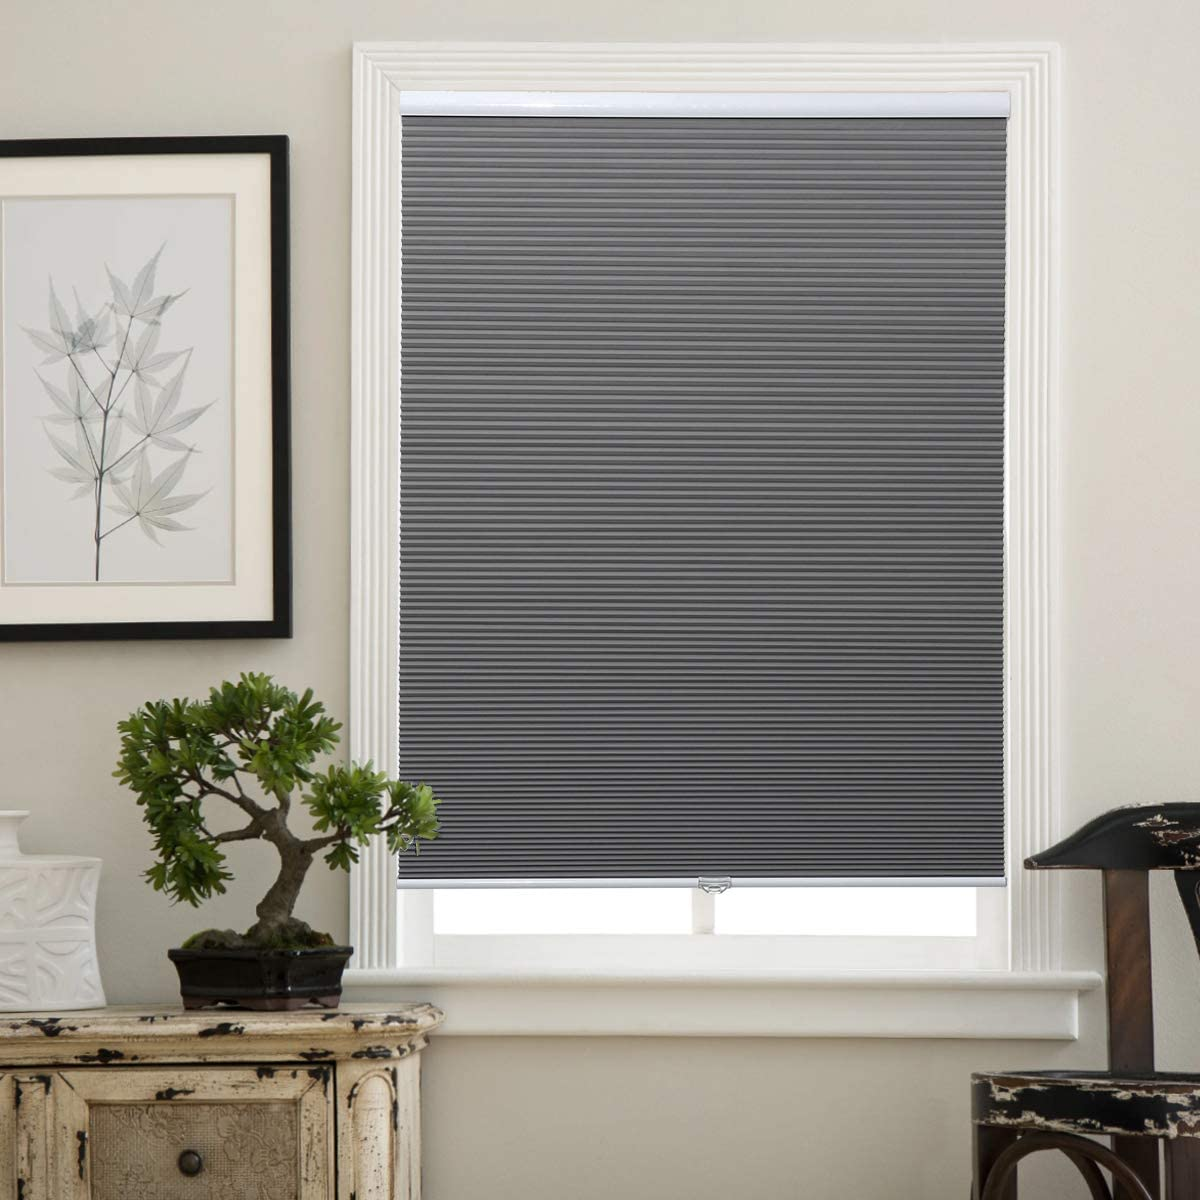 Matinss Cellular Shades Cordless Window Blinds Honeycomb Shades for Home and Windows Bedroom, Blackout Shades, Grey-White, 46×48